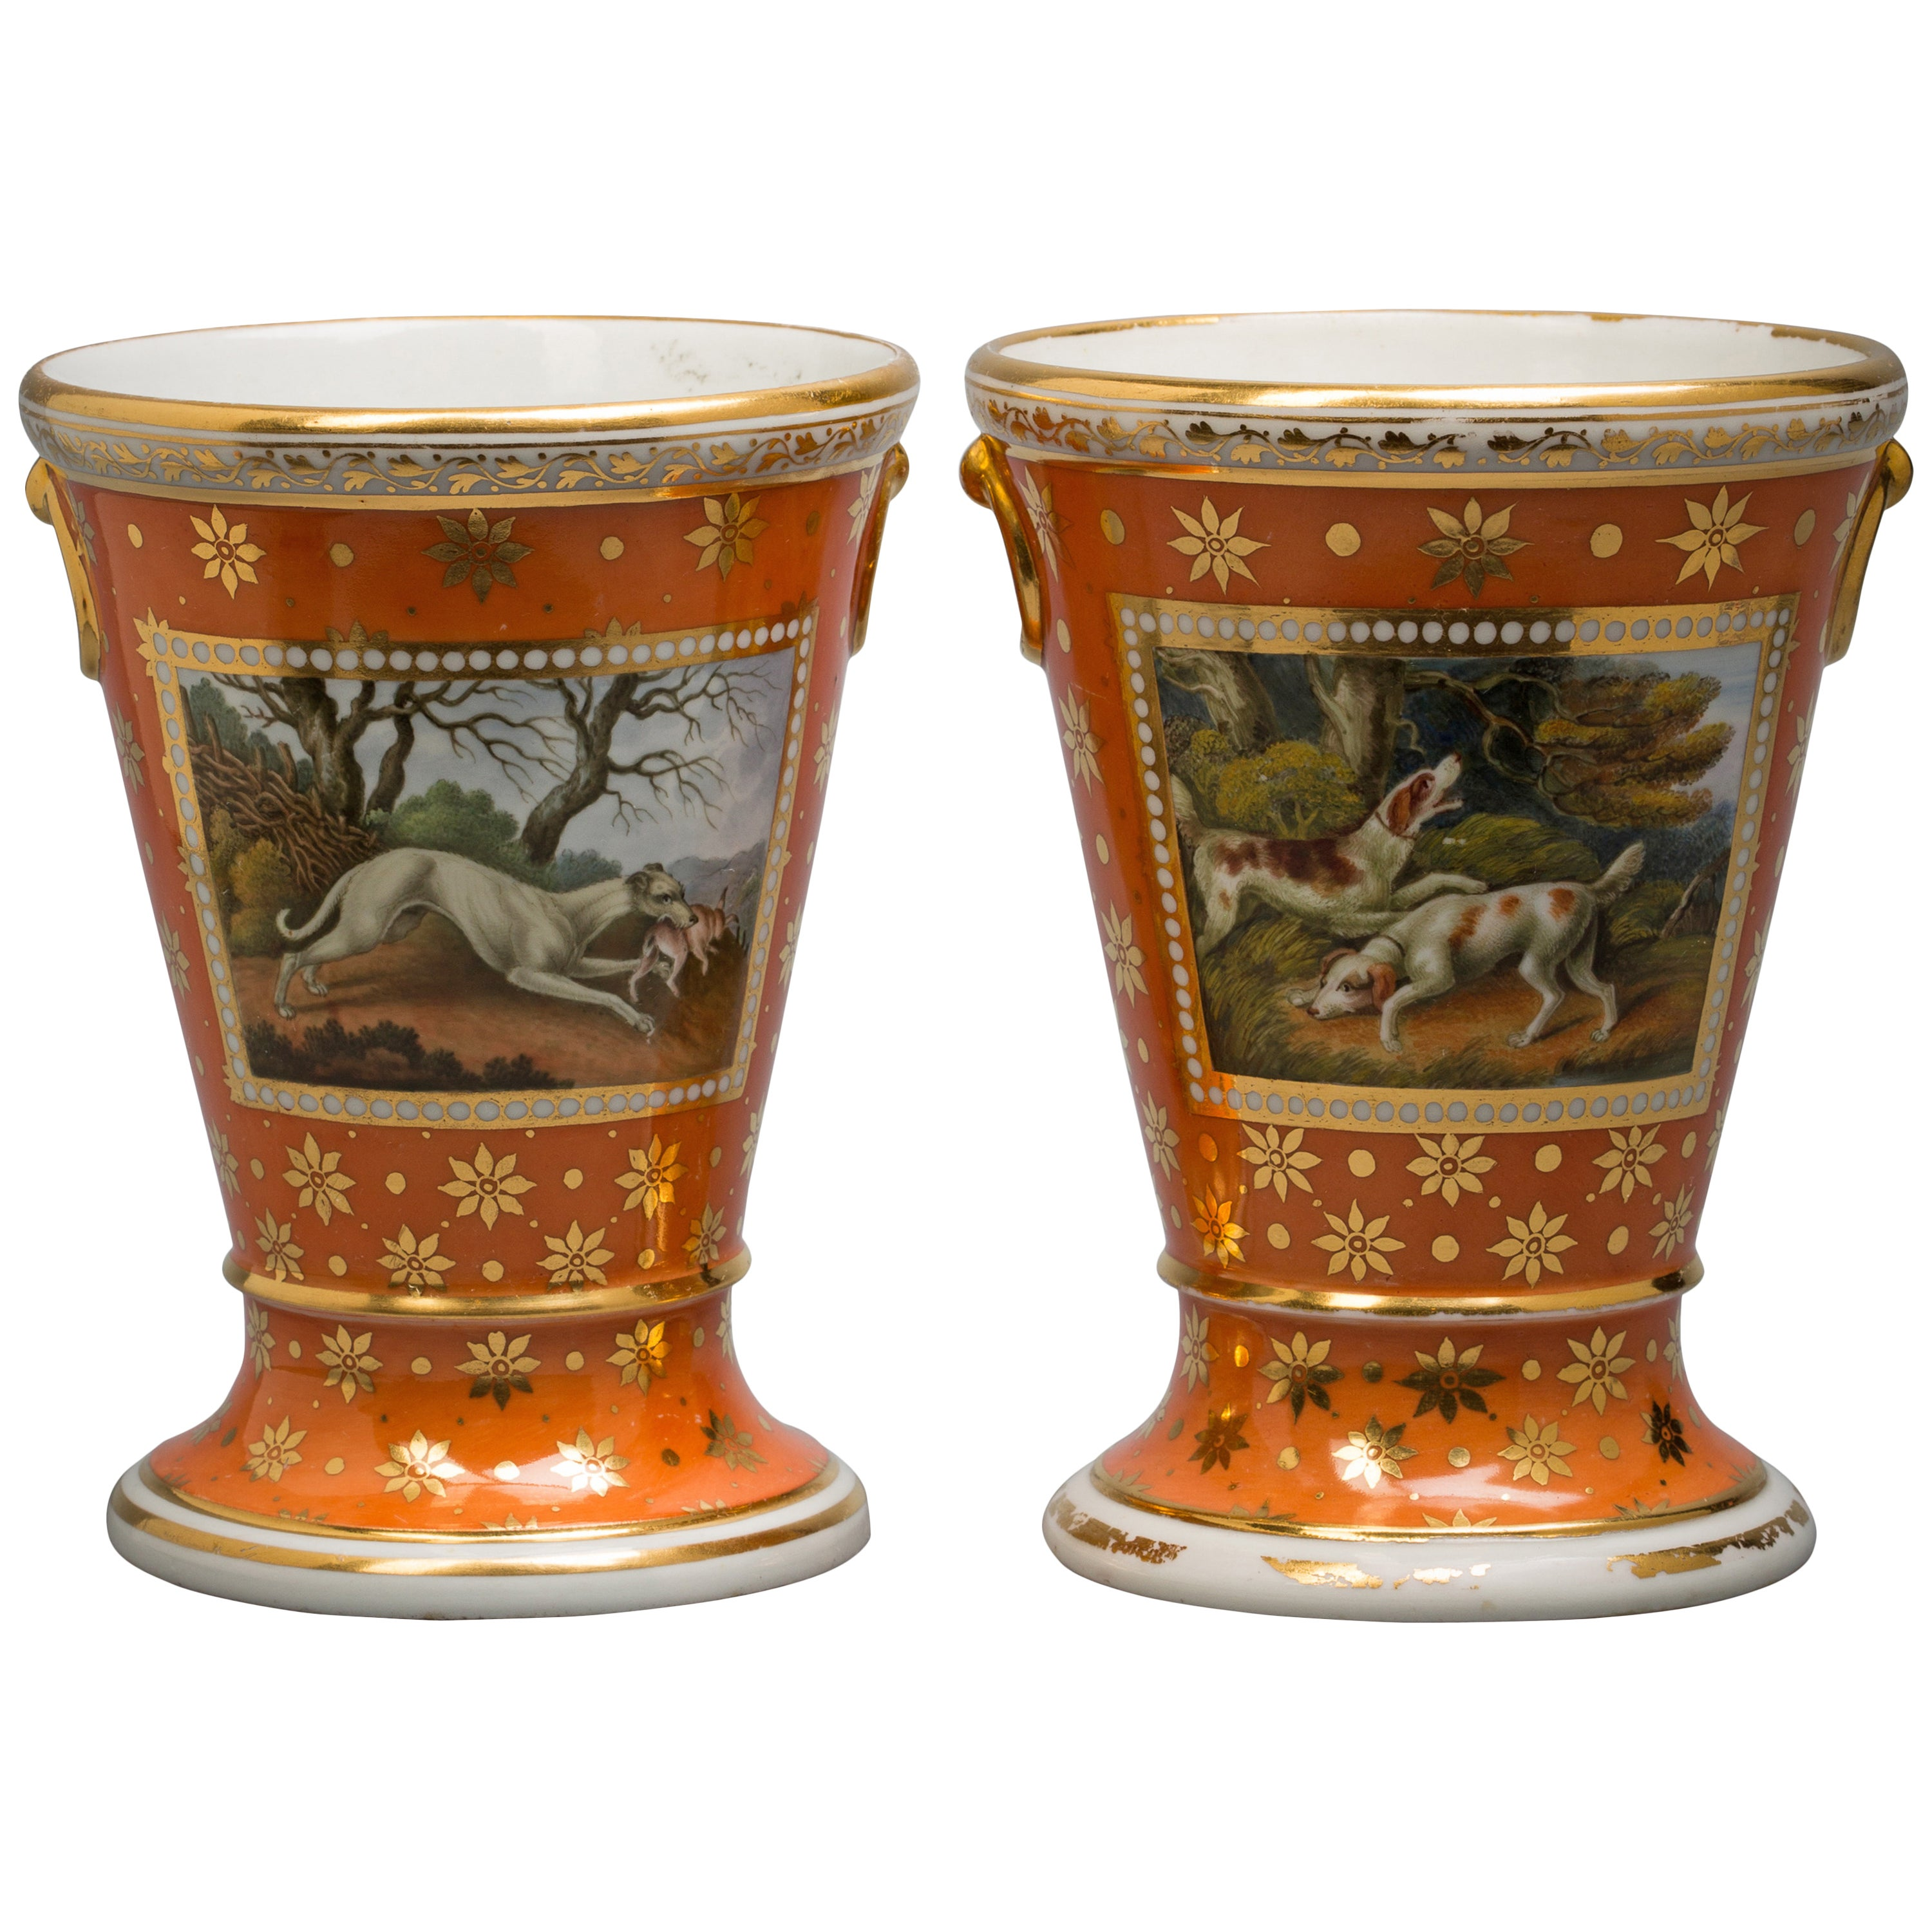 Pair of English Porcelain Cachepots, Flight and Barr, circa 1800